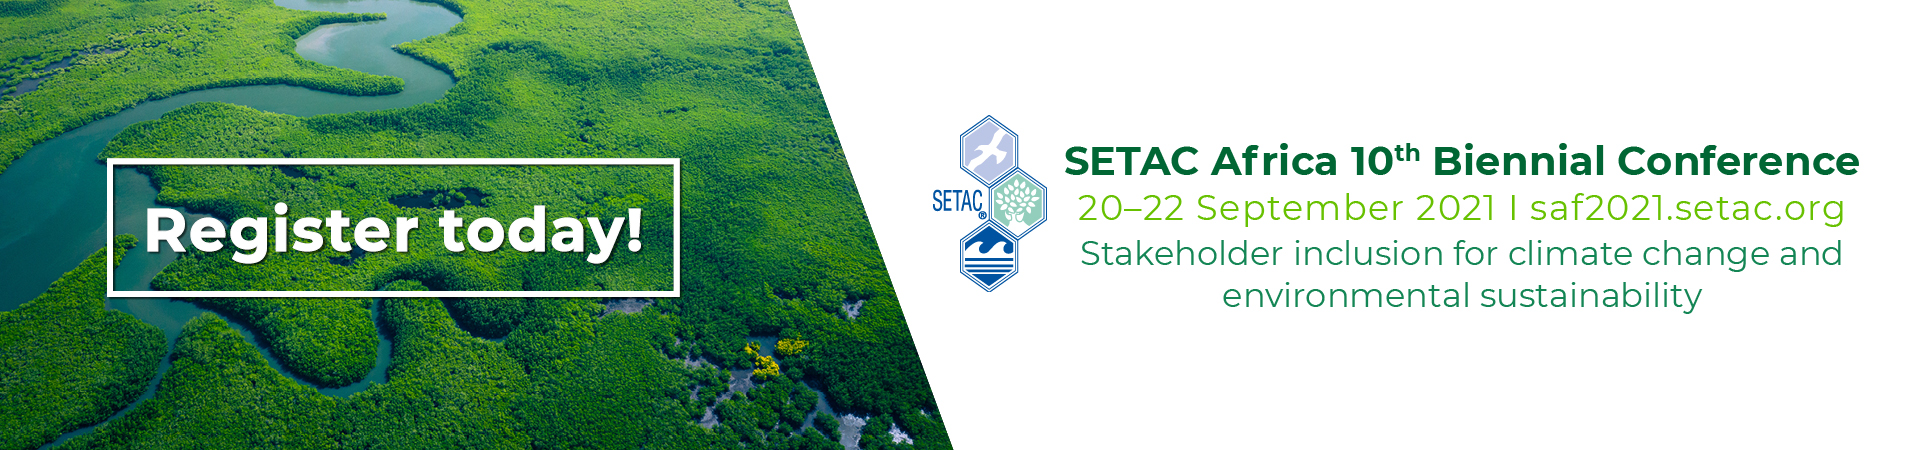 SETAC Africa 10th Biennial Conference